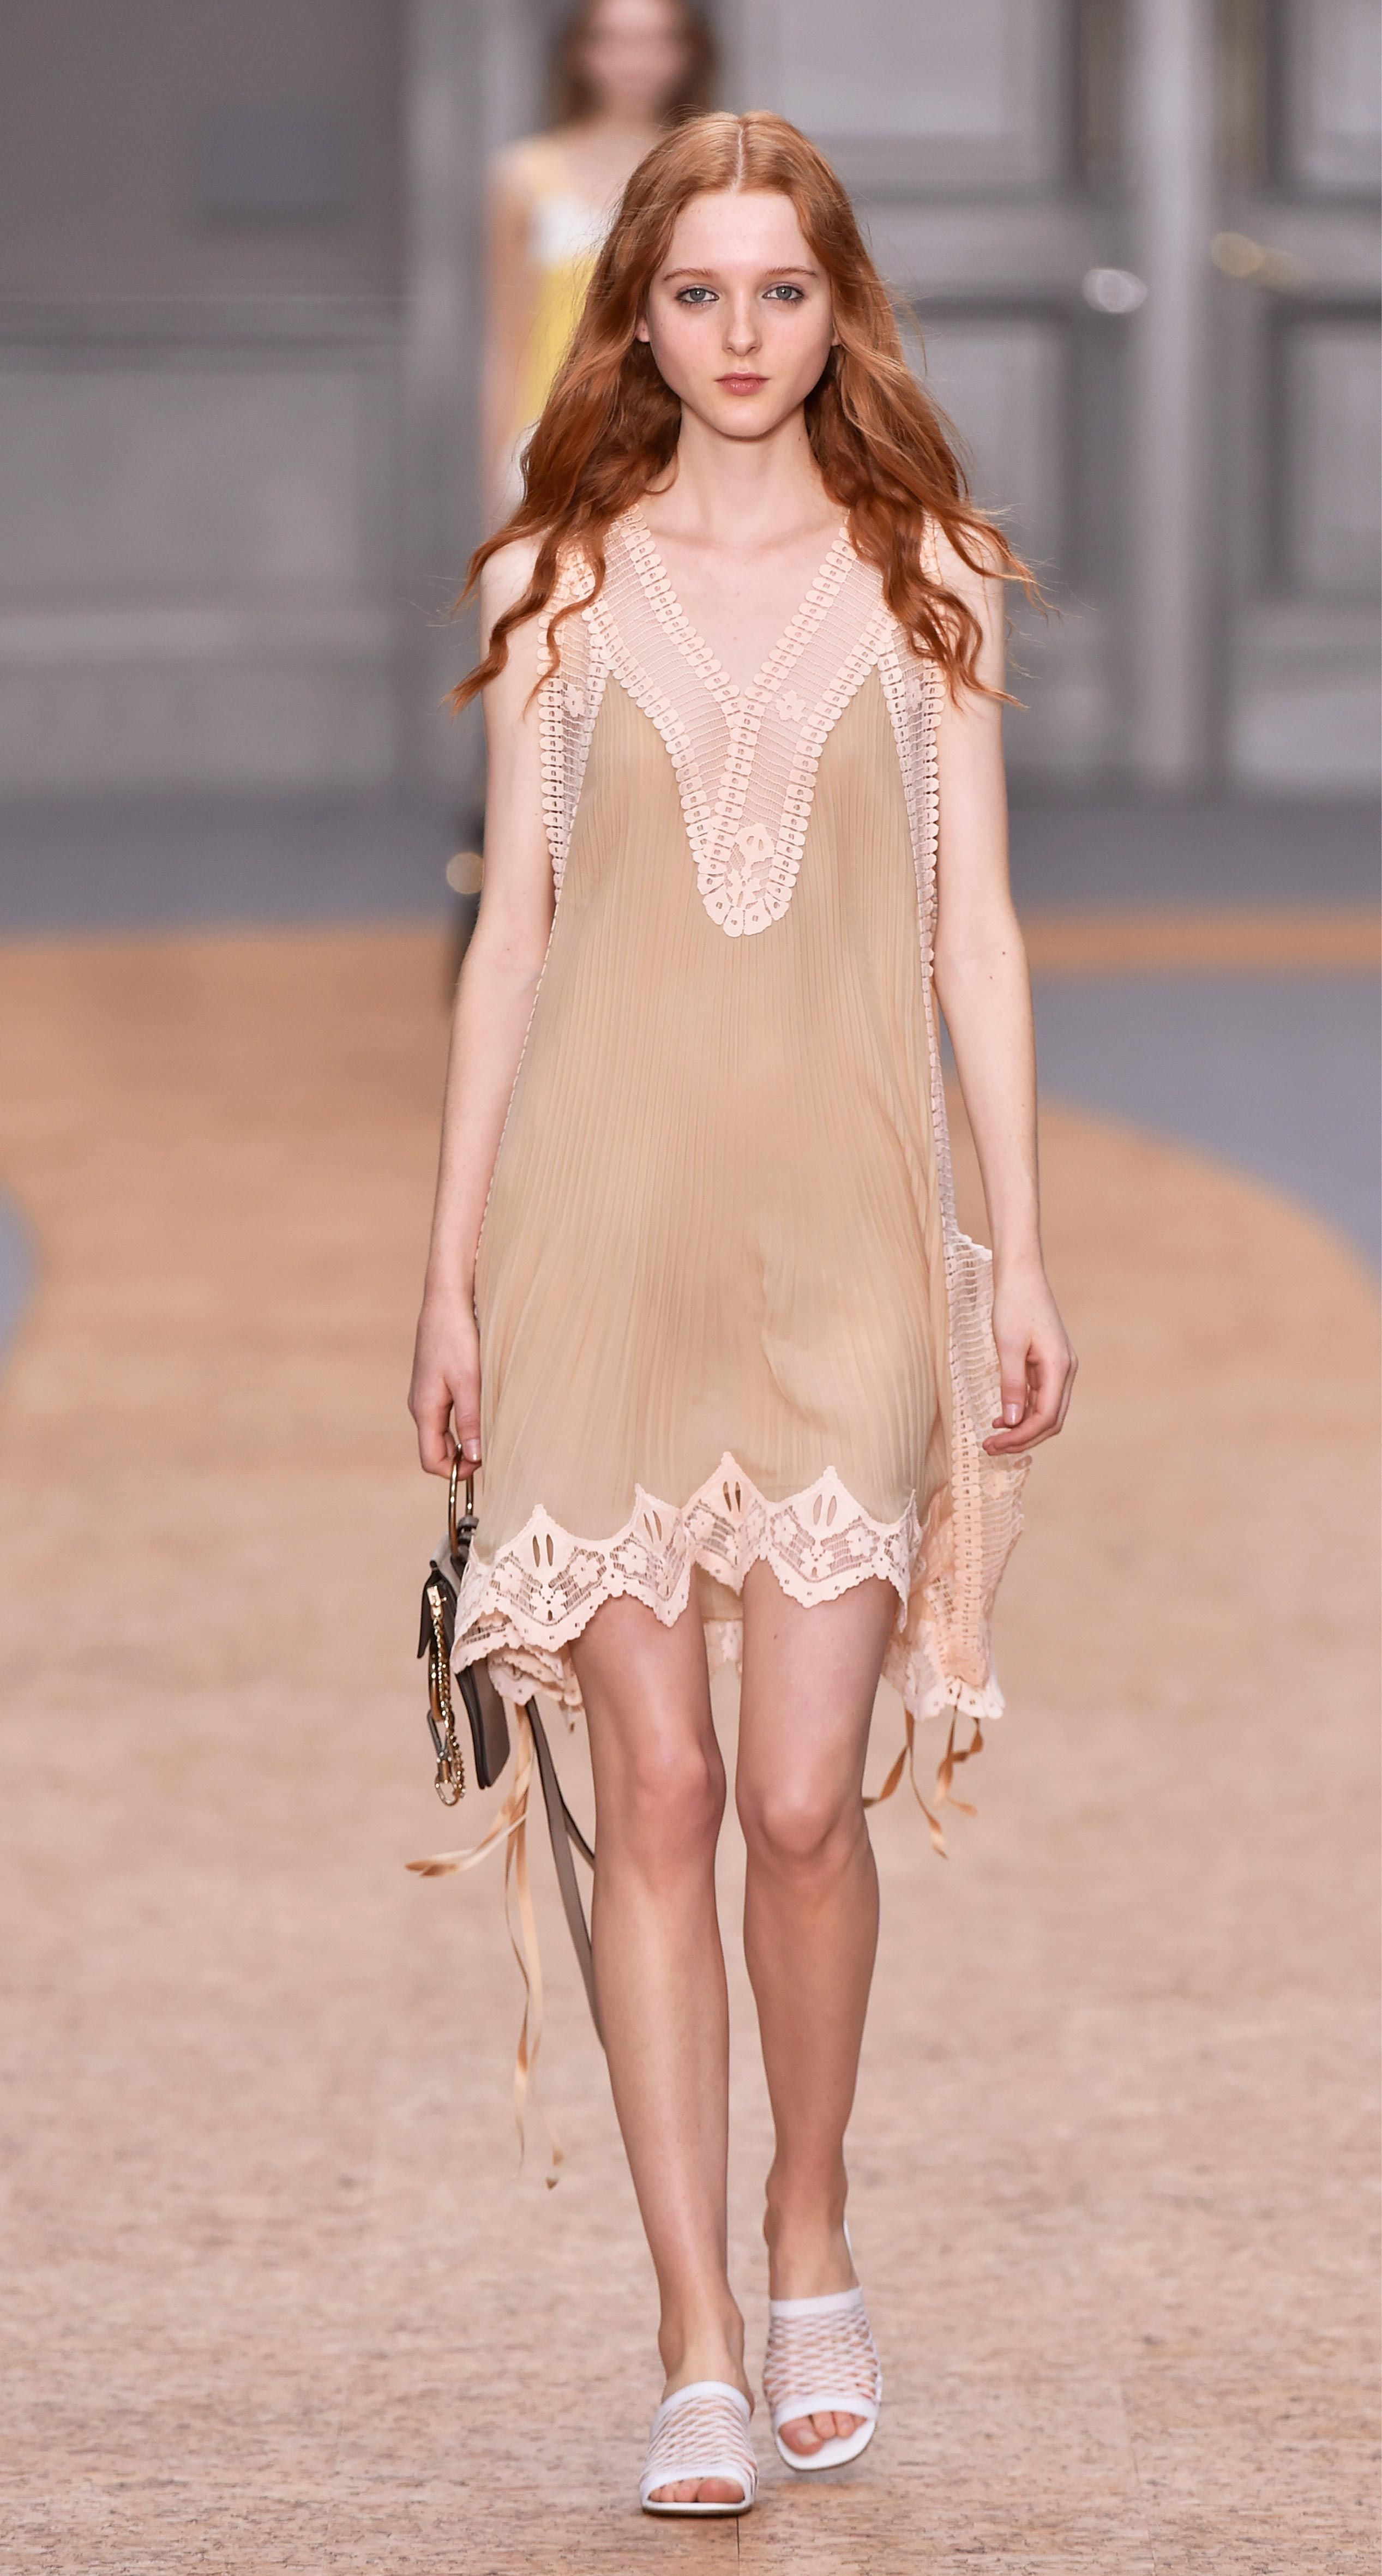 Look from the chloé springsummer collection boheme chic